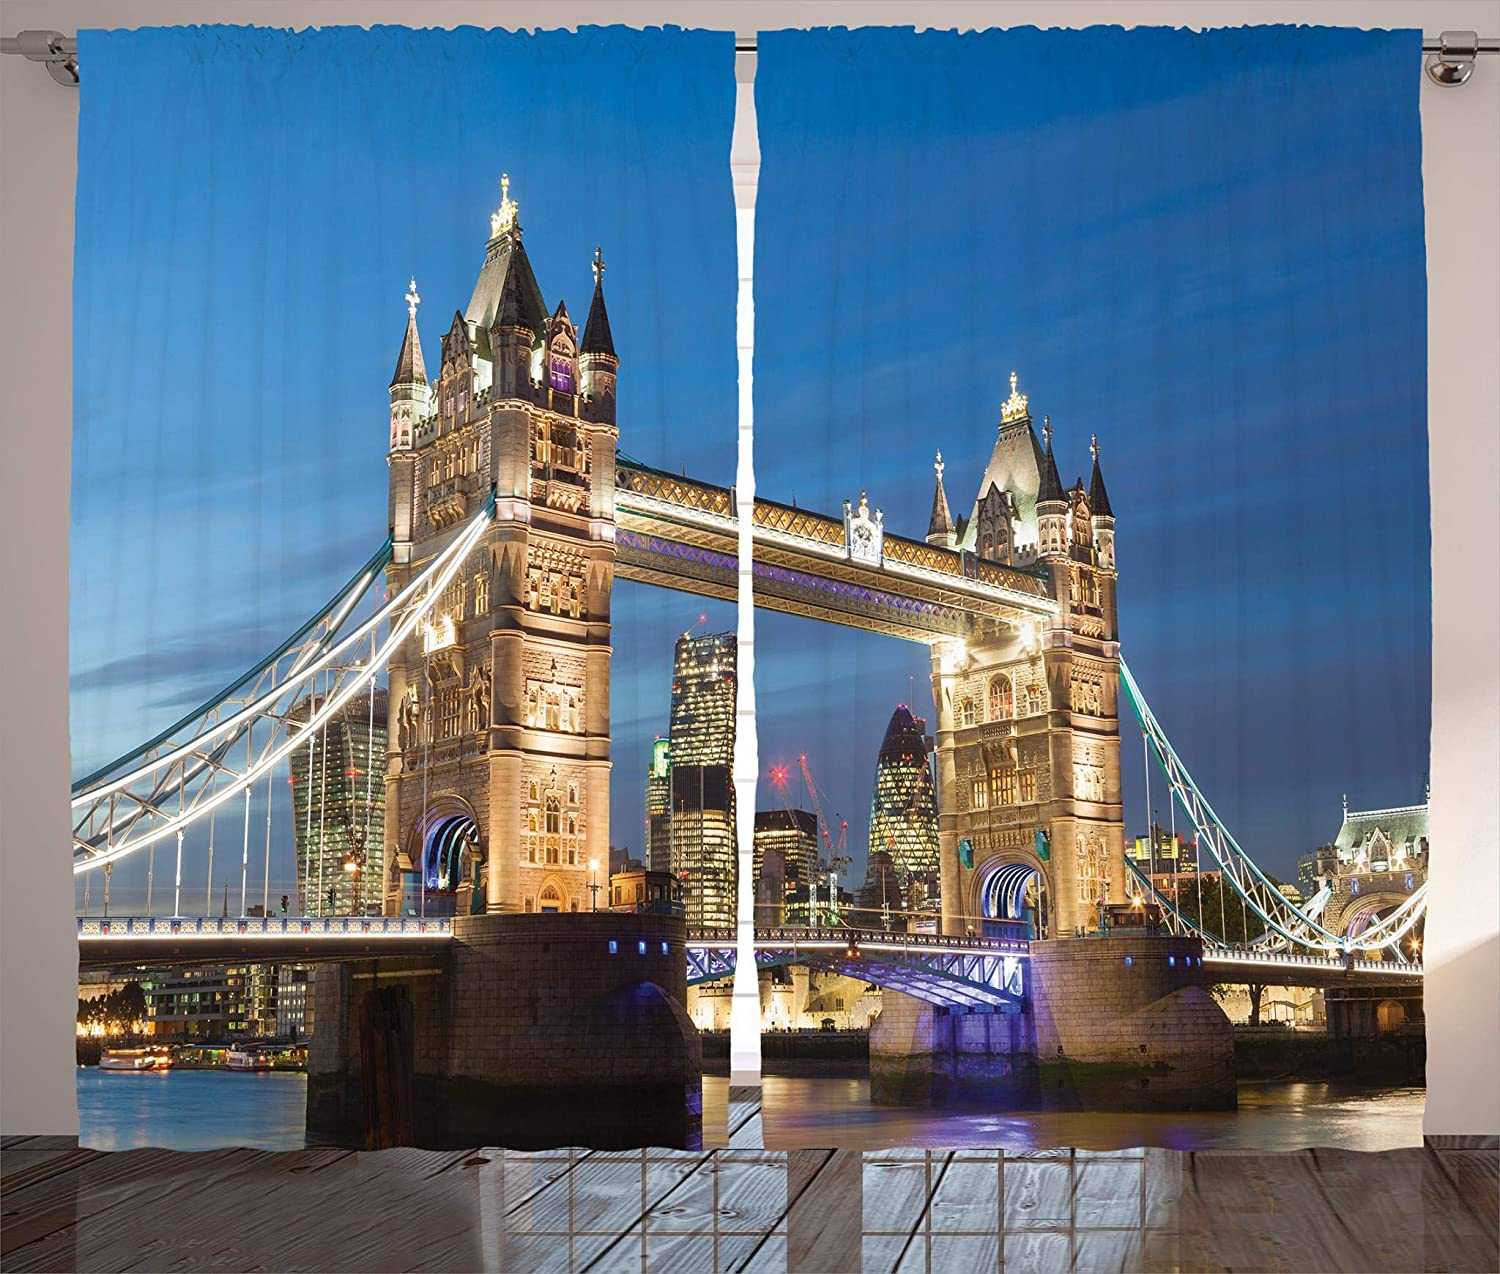 "Ambesonne London Curtains, Scenery of Landmark Tower Bridge at Twilight with Skyscrapers England UK Image, Living Room Bedroom Window Drapes 2 Panel Set, 108"" X 84"", Blue and Ivory"